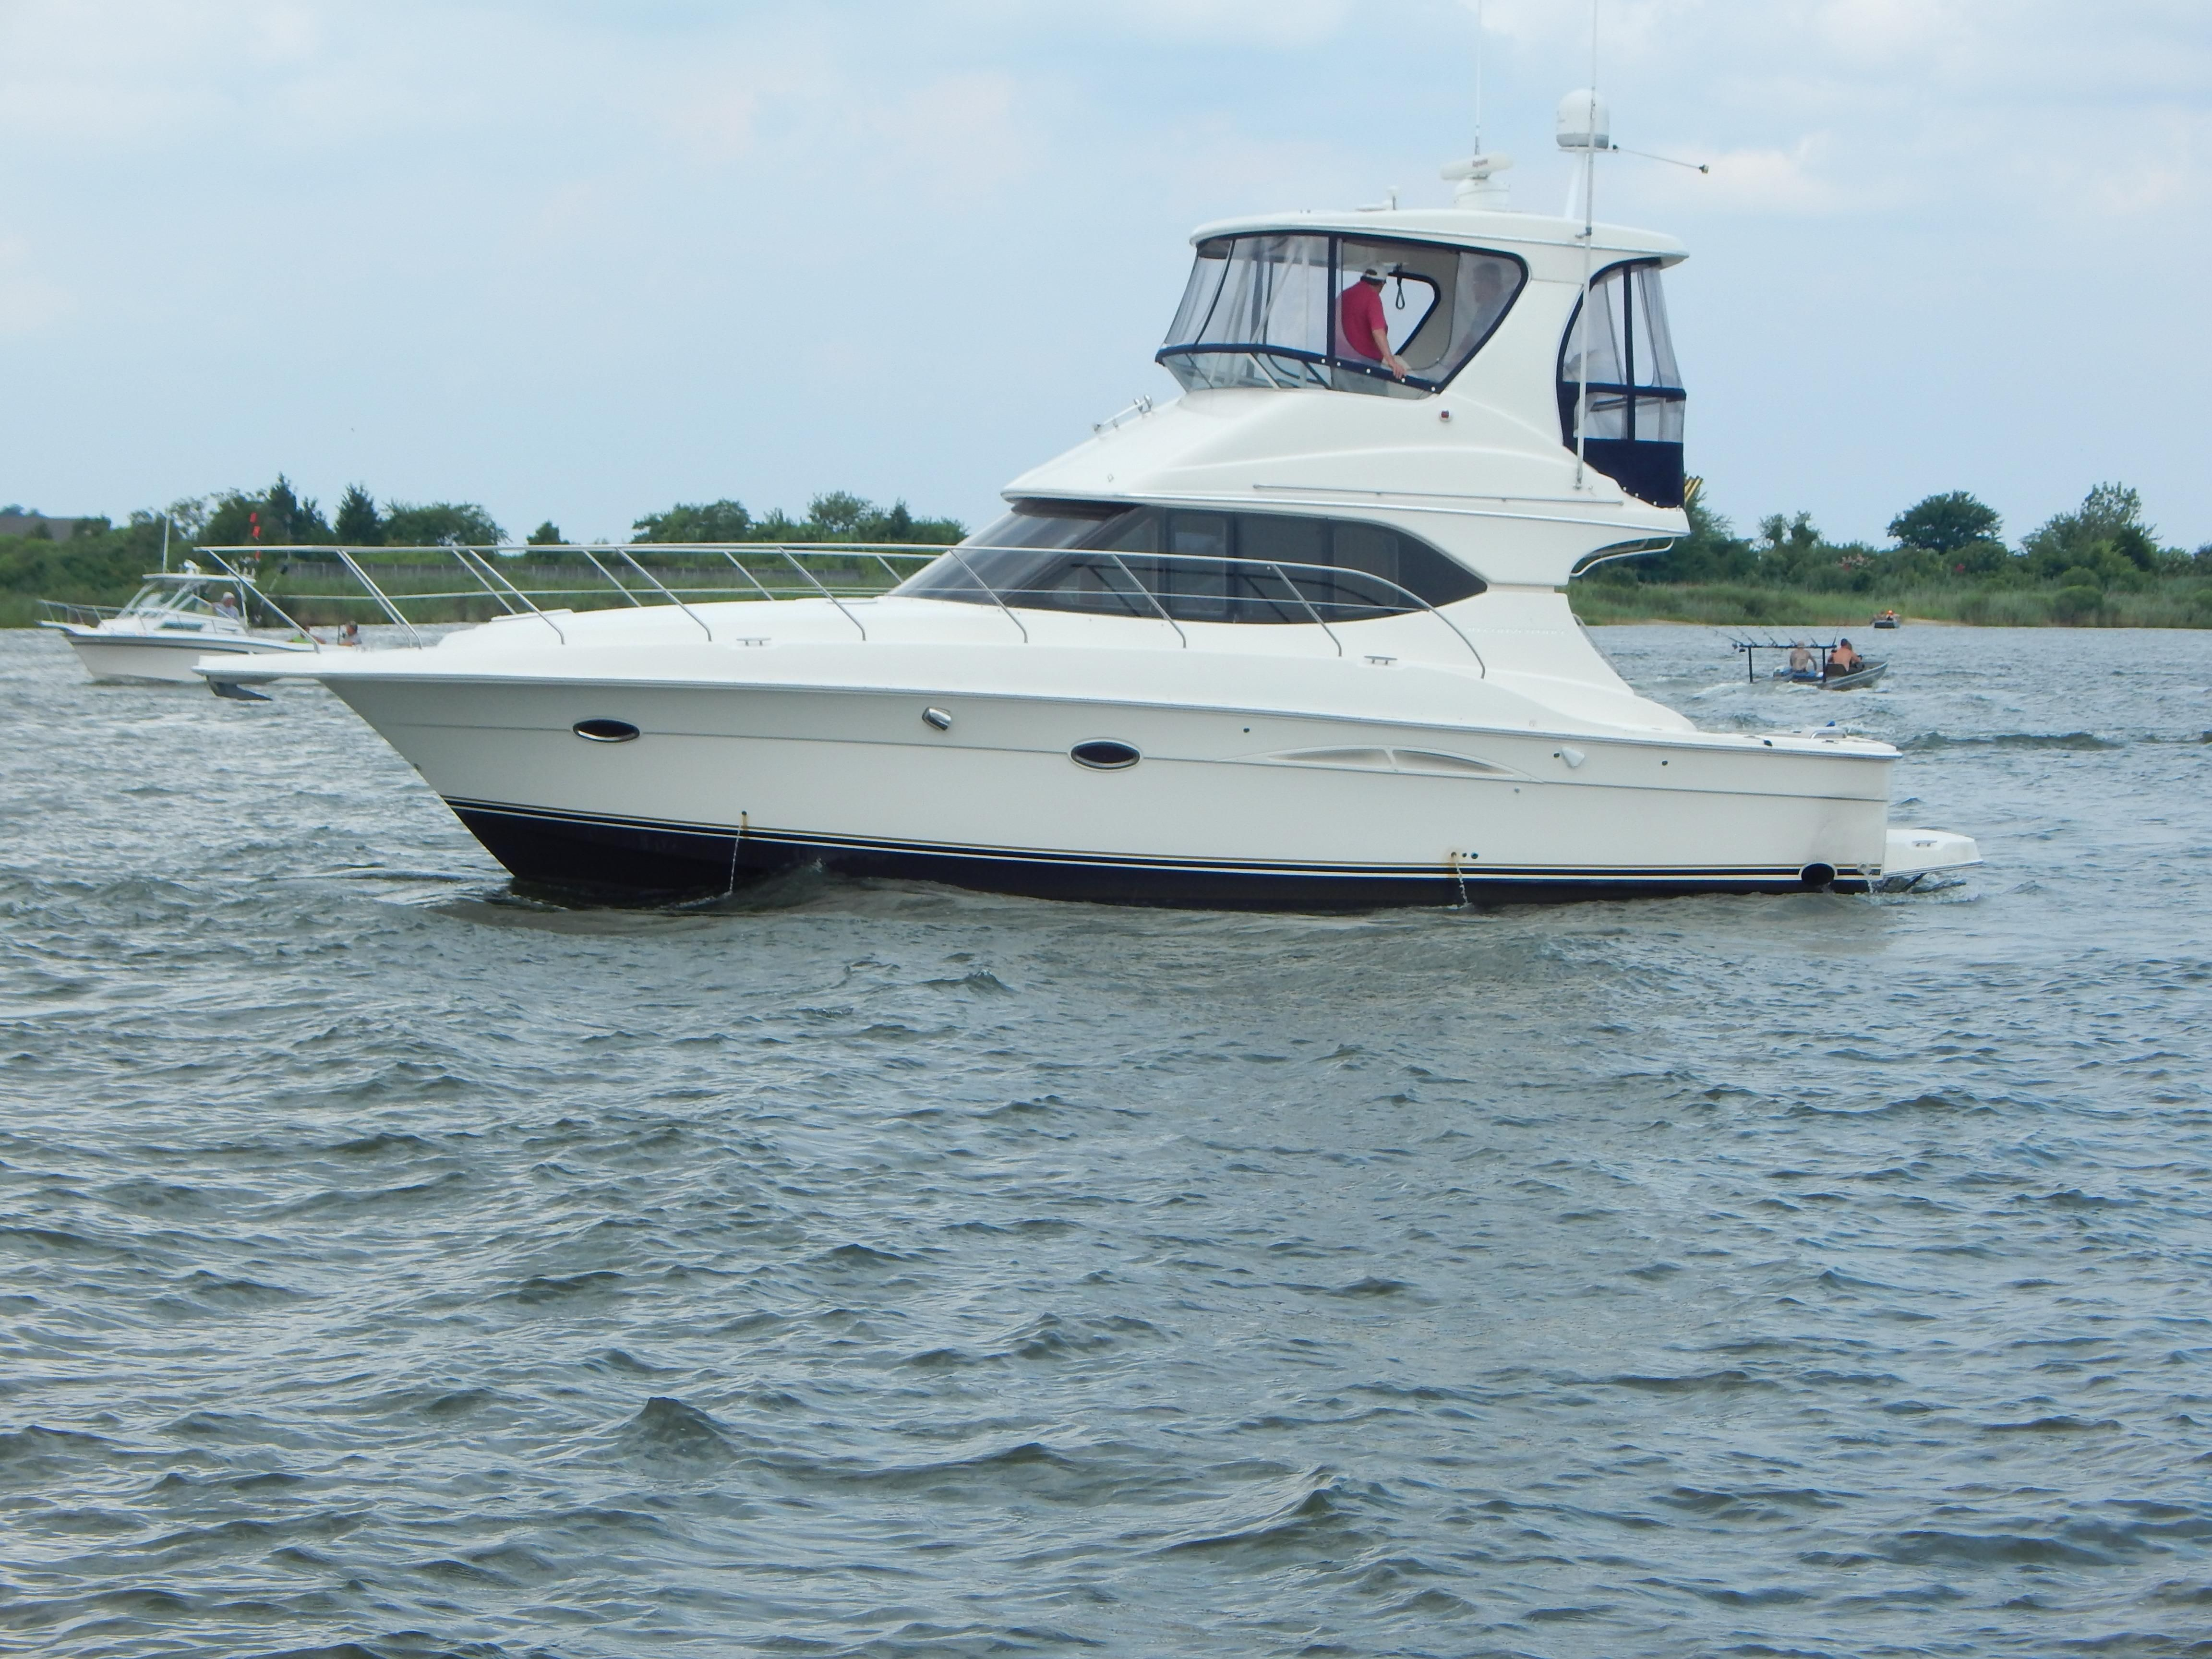 Grasonville (MD) United States  city images : 2003 Silverton 38 Convertible Power Boat For Sale www.yachtworld.com